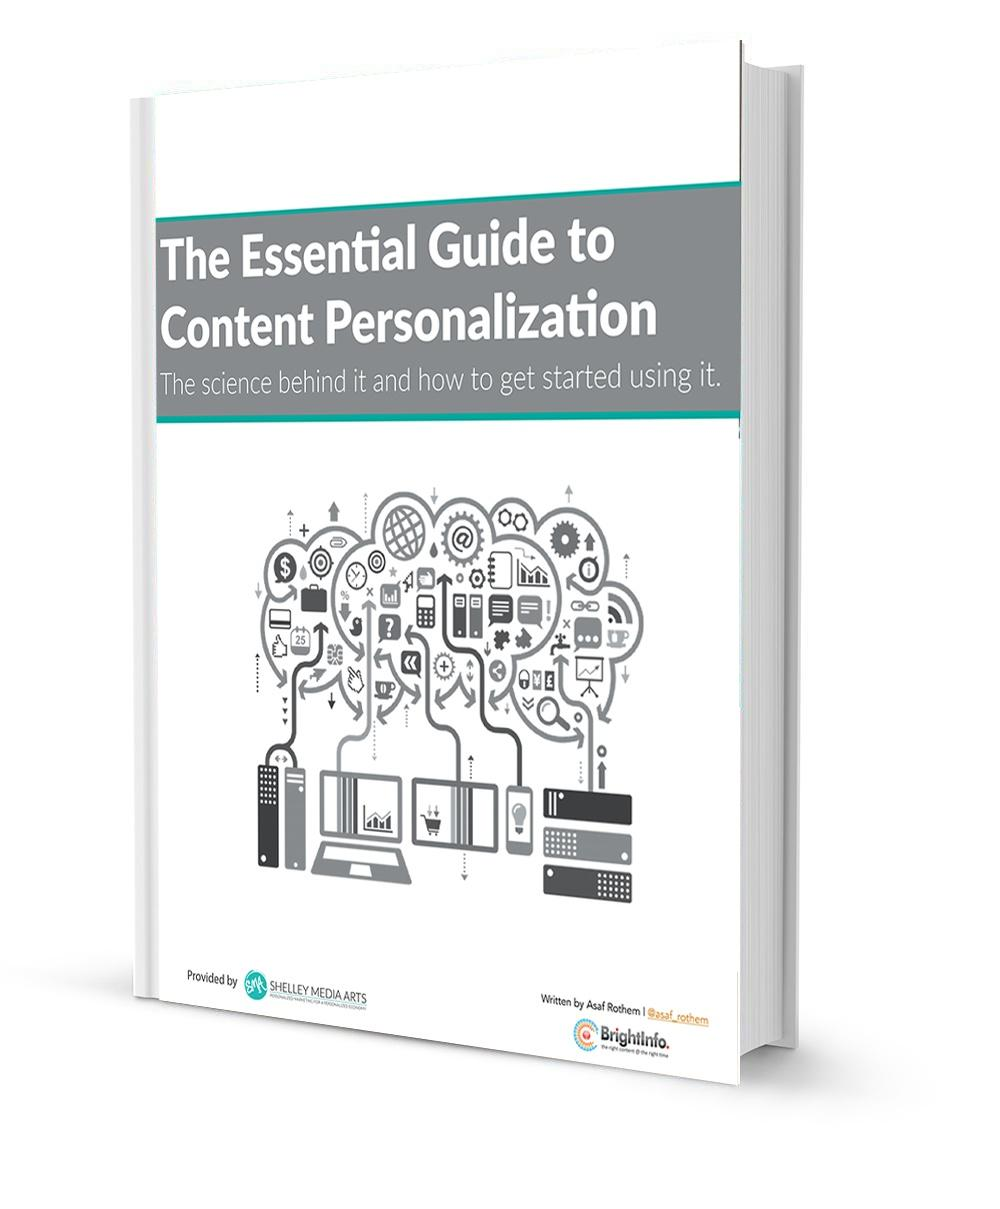 THE ESSENTIAL GUIDE TO CONTENT PERSONALIZATION